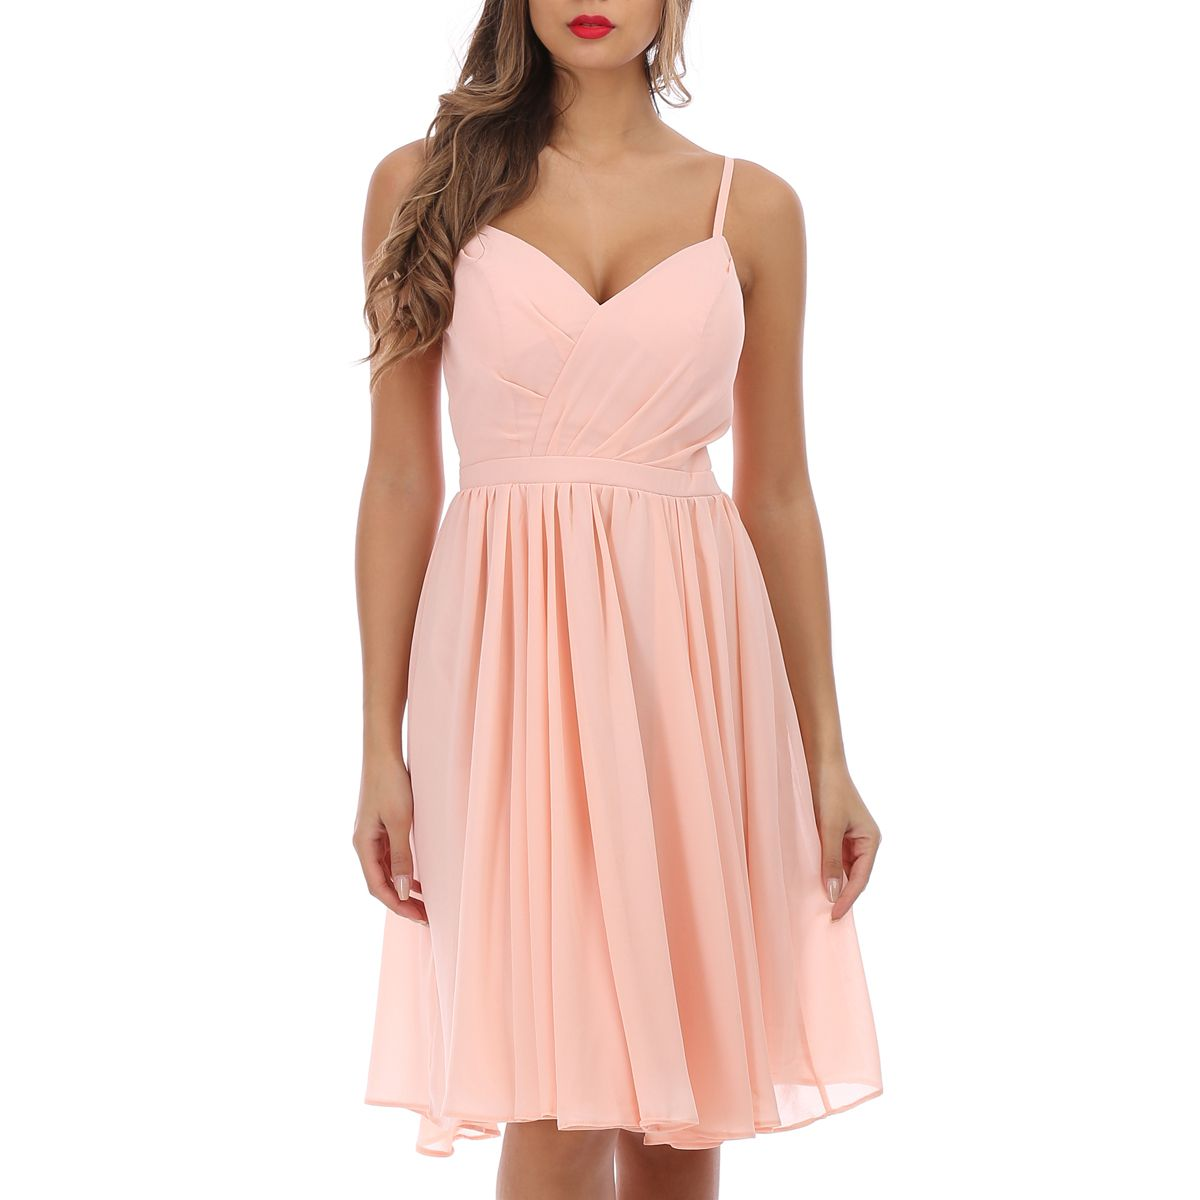 Robe patineuse rose cache-coeur